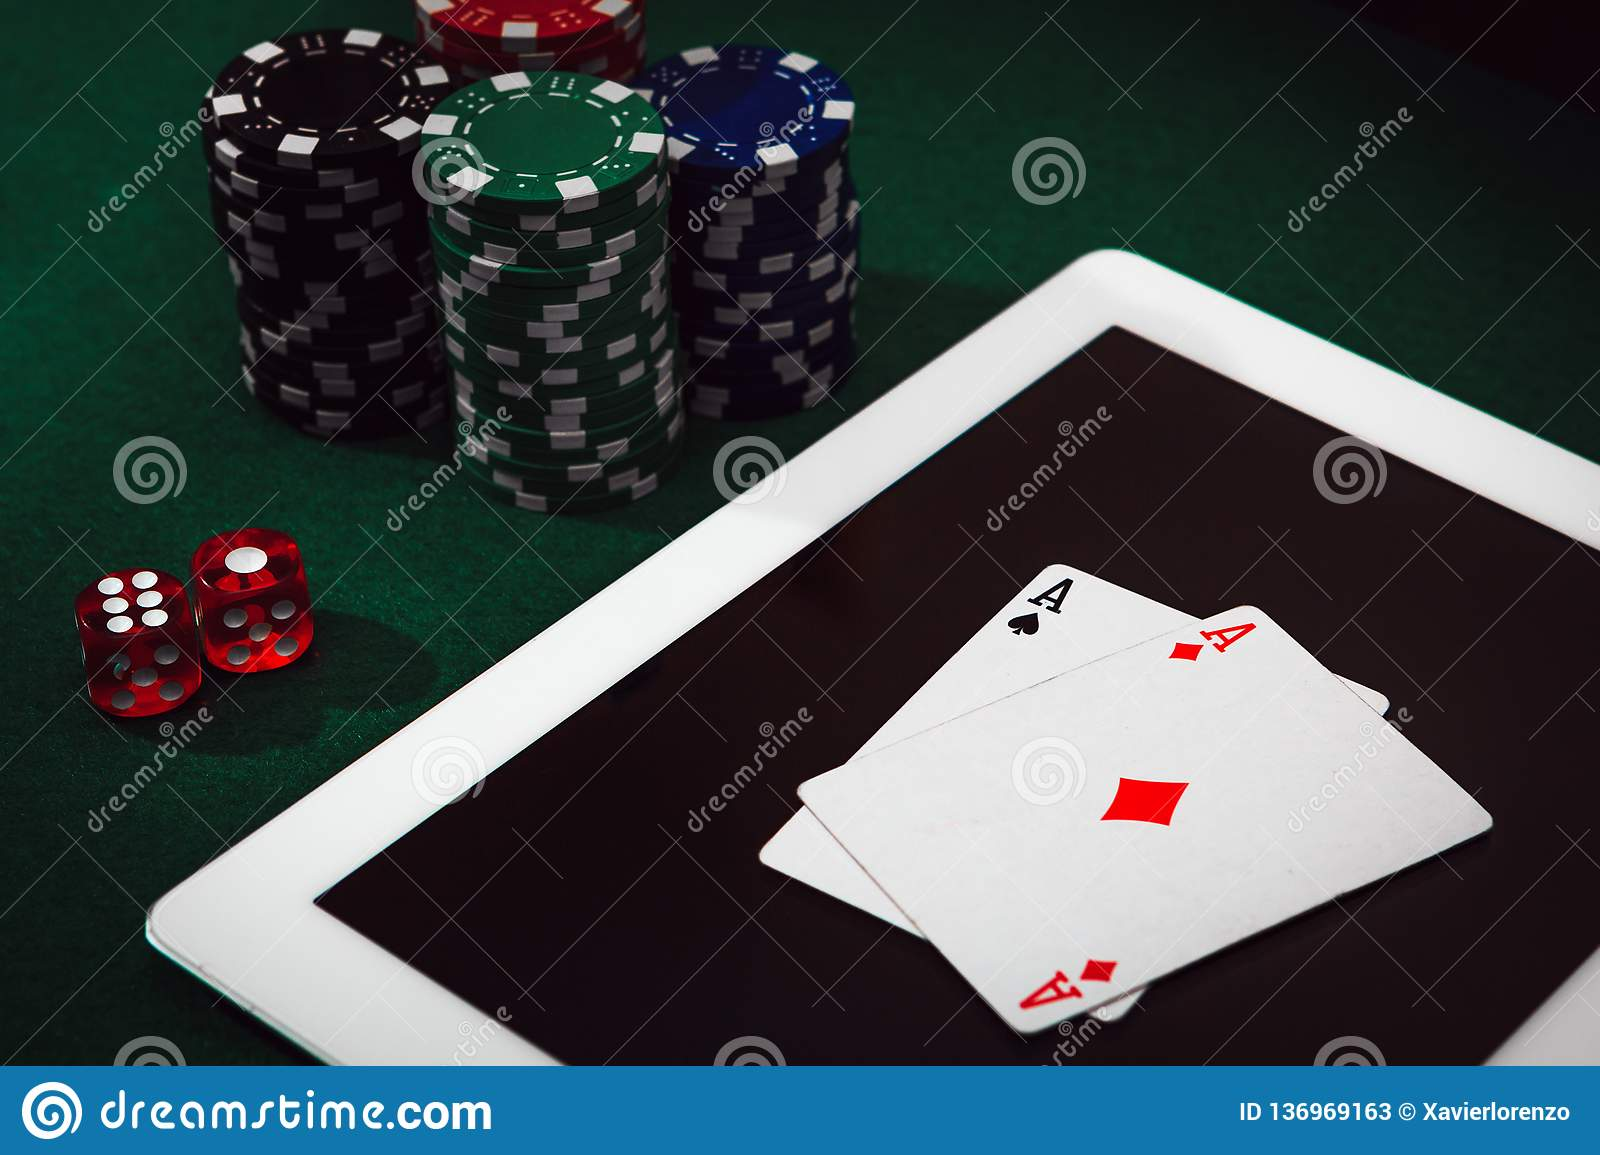 Gambling Addiction On Internet Bet And Win Money Playing Poker Online Casino Chips Cards And Dices Stacking On A Laptop Stock Image Image Of Online Casinos 136969163